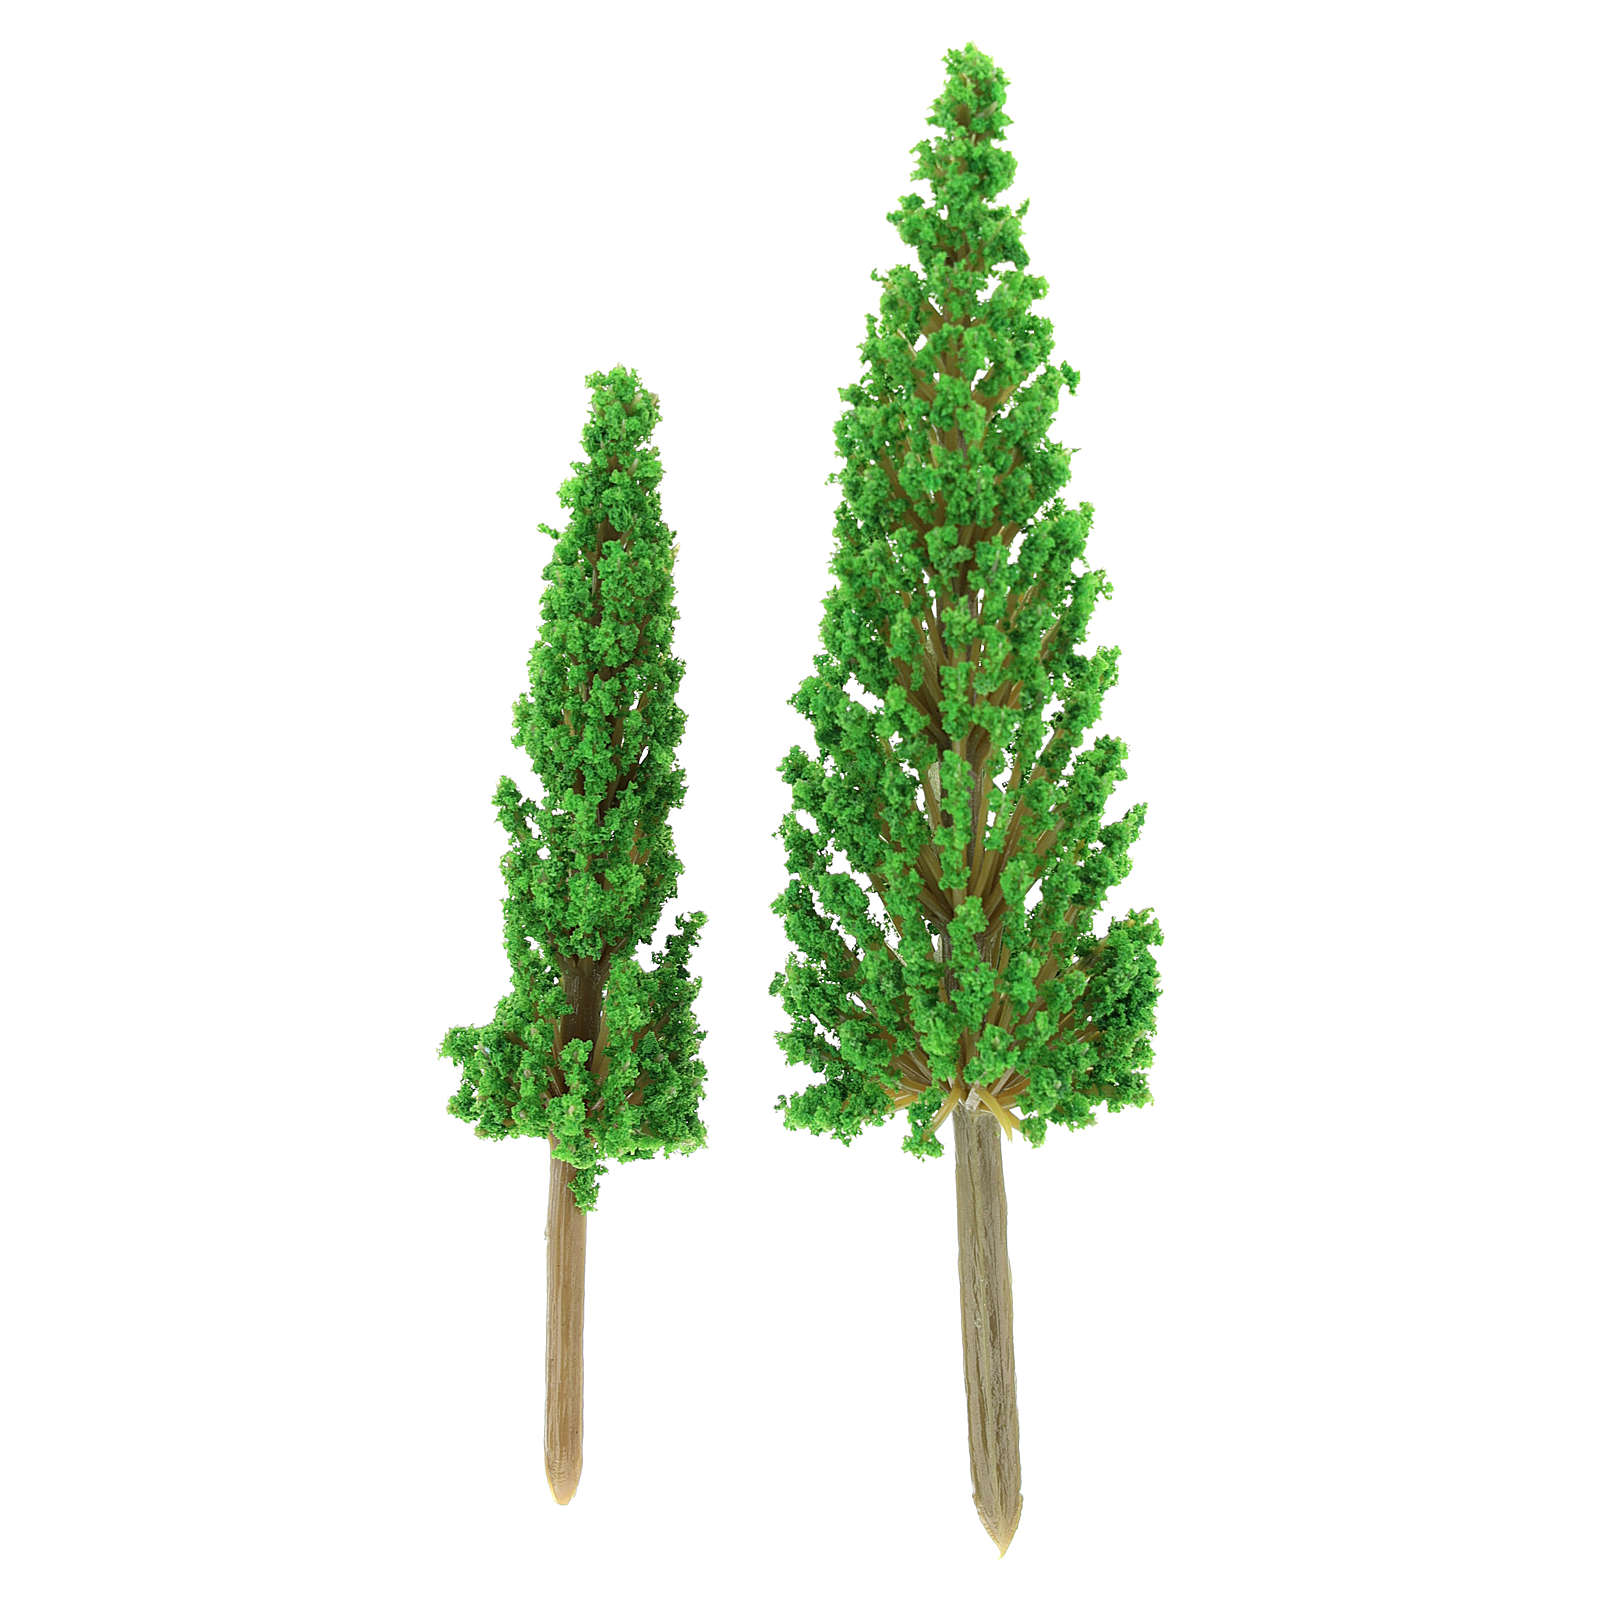 Cypress tree set 2 pcs for DIY Nativity scene real h 11-14 cm 4